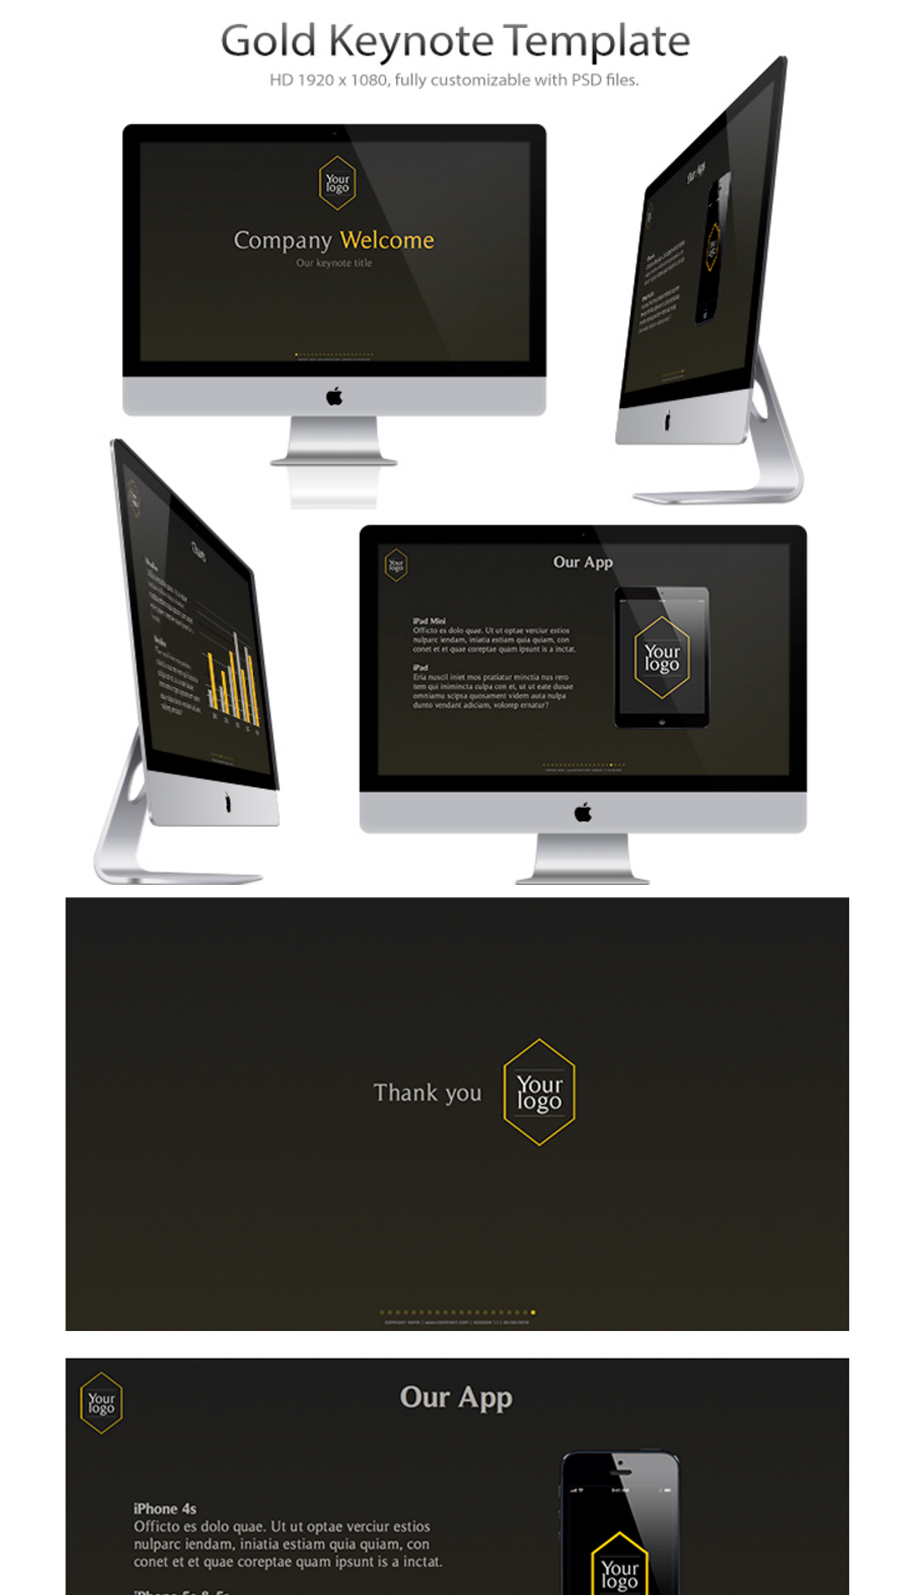 Free business powerpoint templates 10 impressive designs gold keynote free powerpoint template toneelgroepblik Image collections